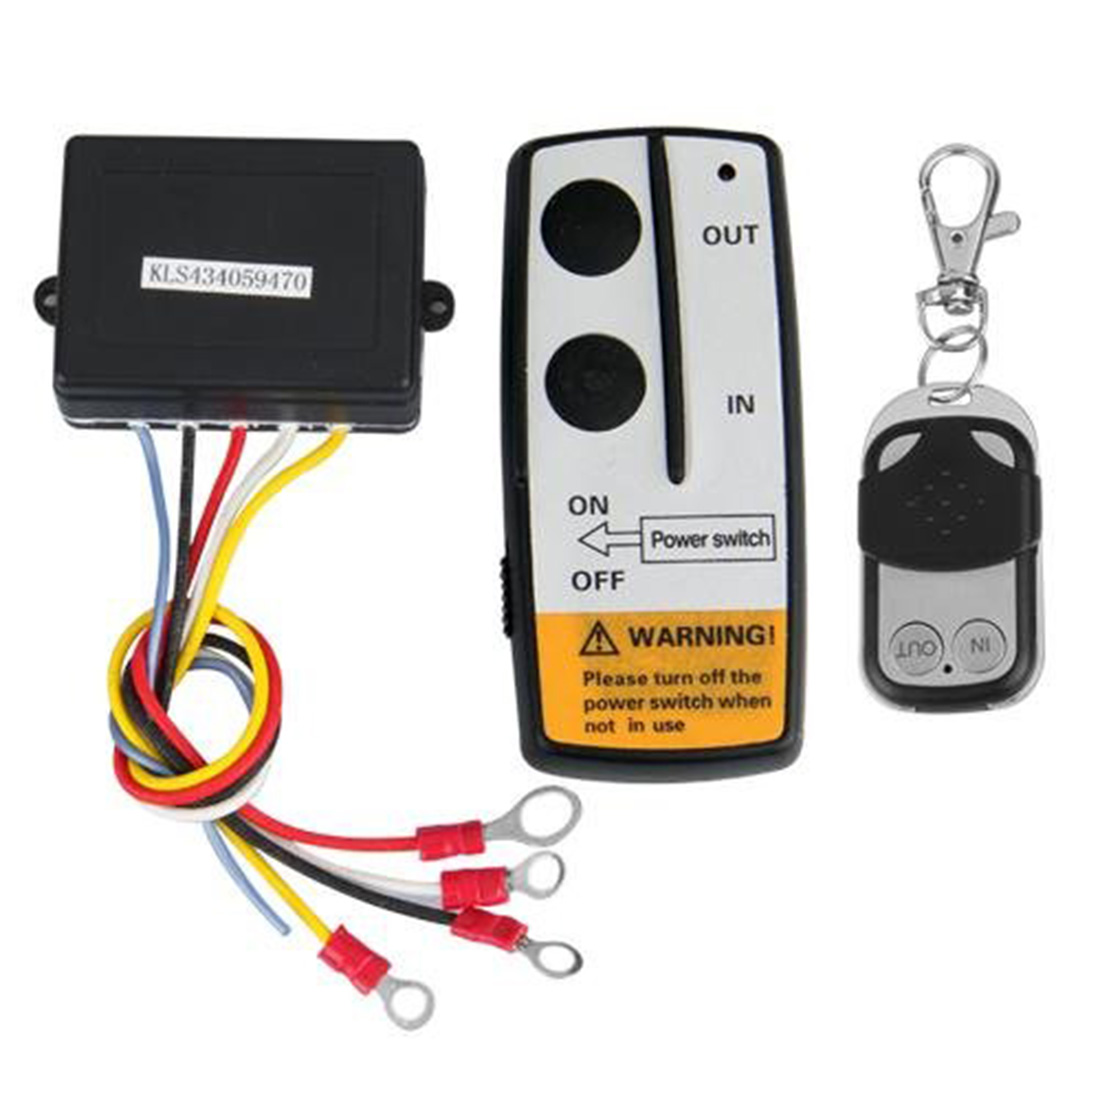 medium resolution of universal wireless winch remote control kit 12v 50ft 2 remotes with indicator light car detector for truck jeep atv suv